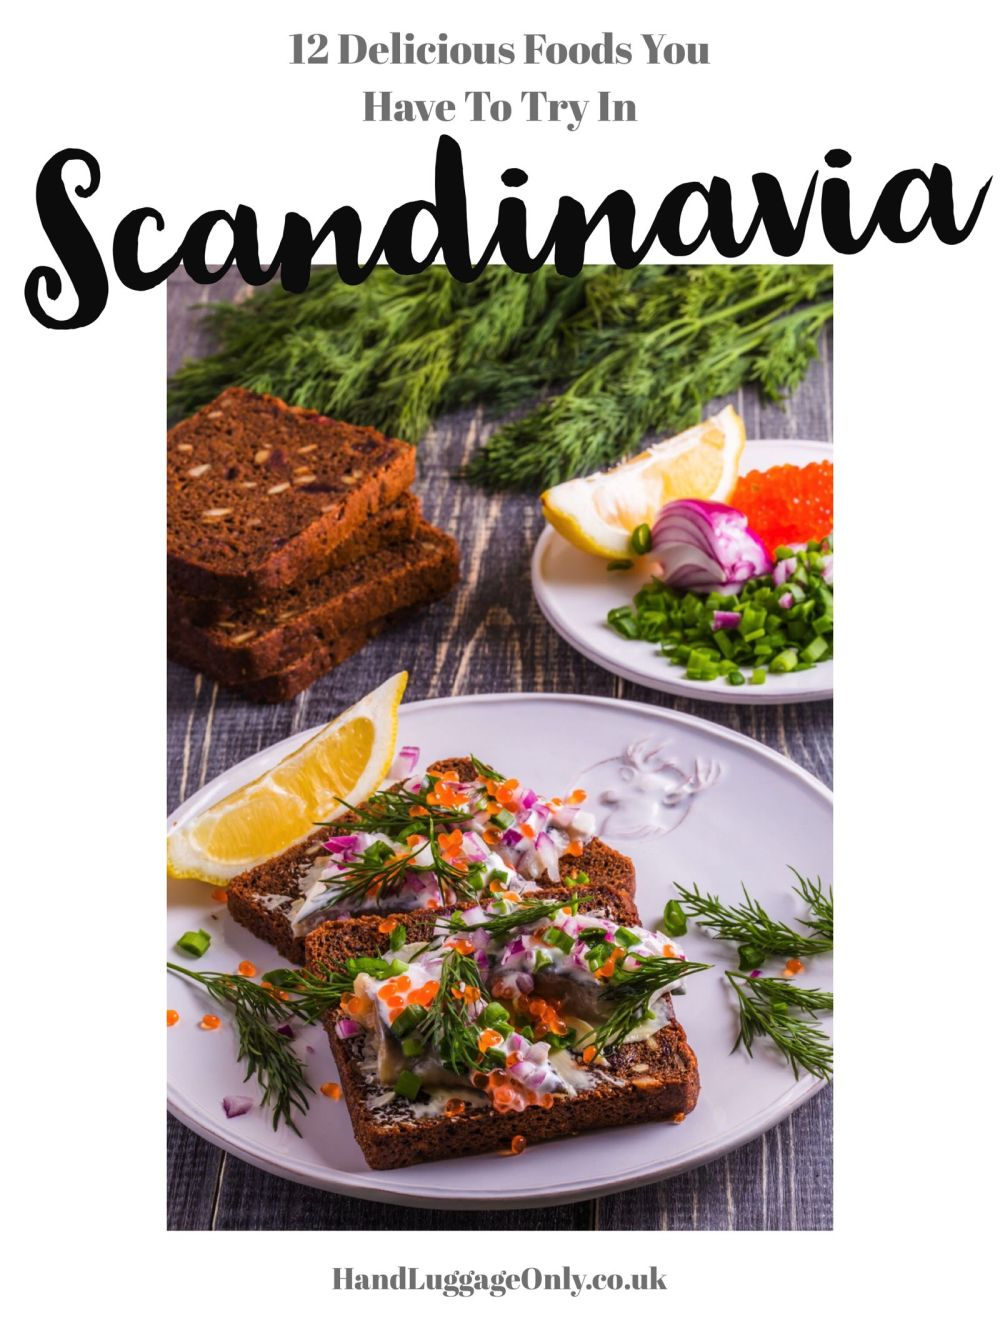 12 Delicious Foods You Have To Eat In Scandinavia (12)